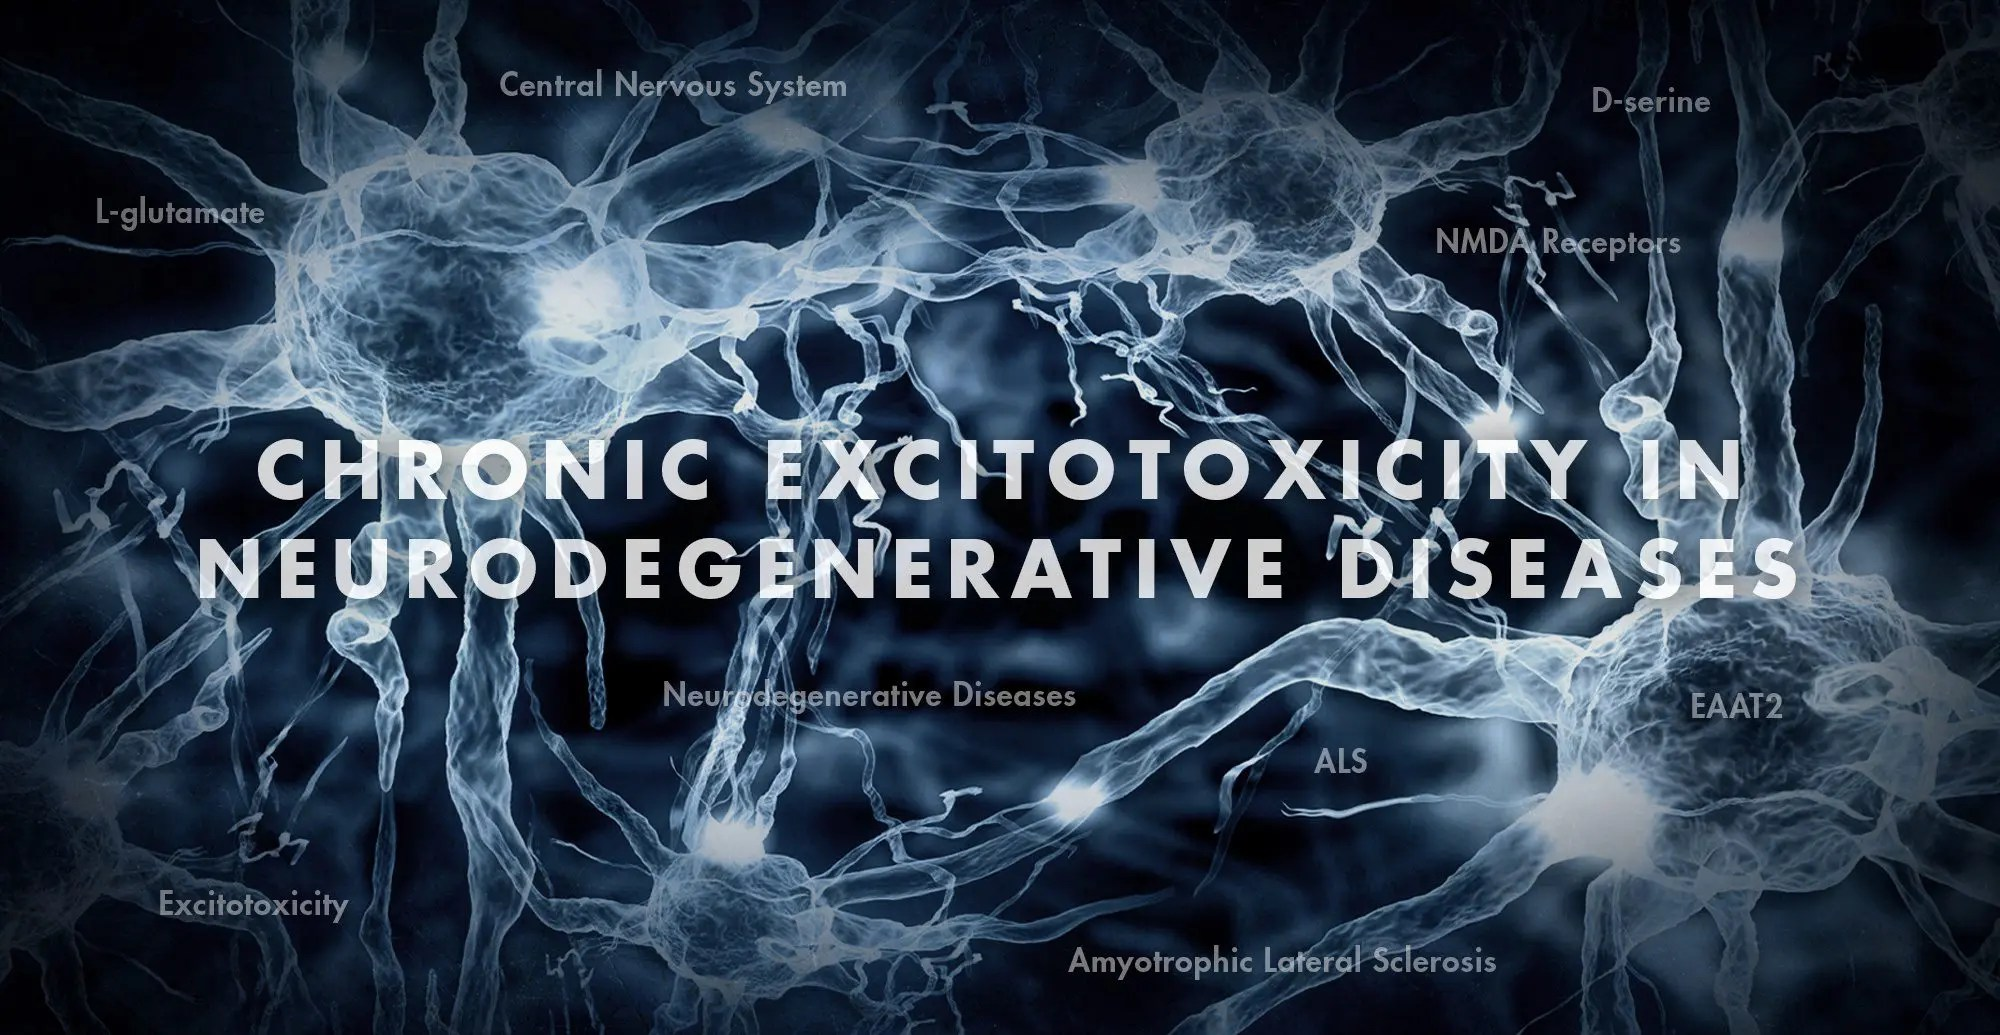 Functional Neurology: Chronic Excitotoxicity in Neurodegenerative Diseases Part 3